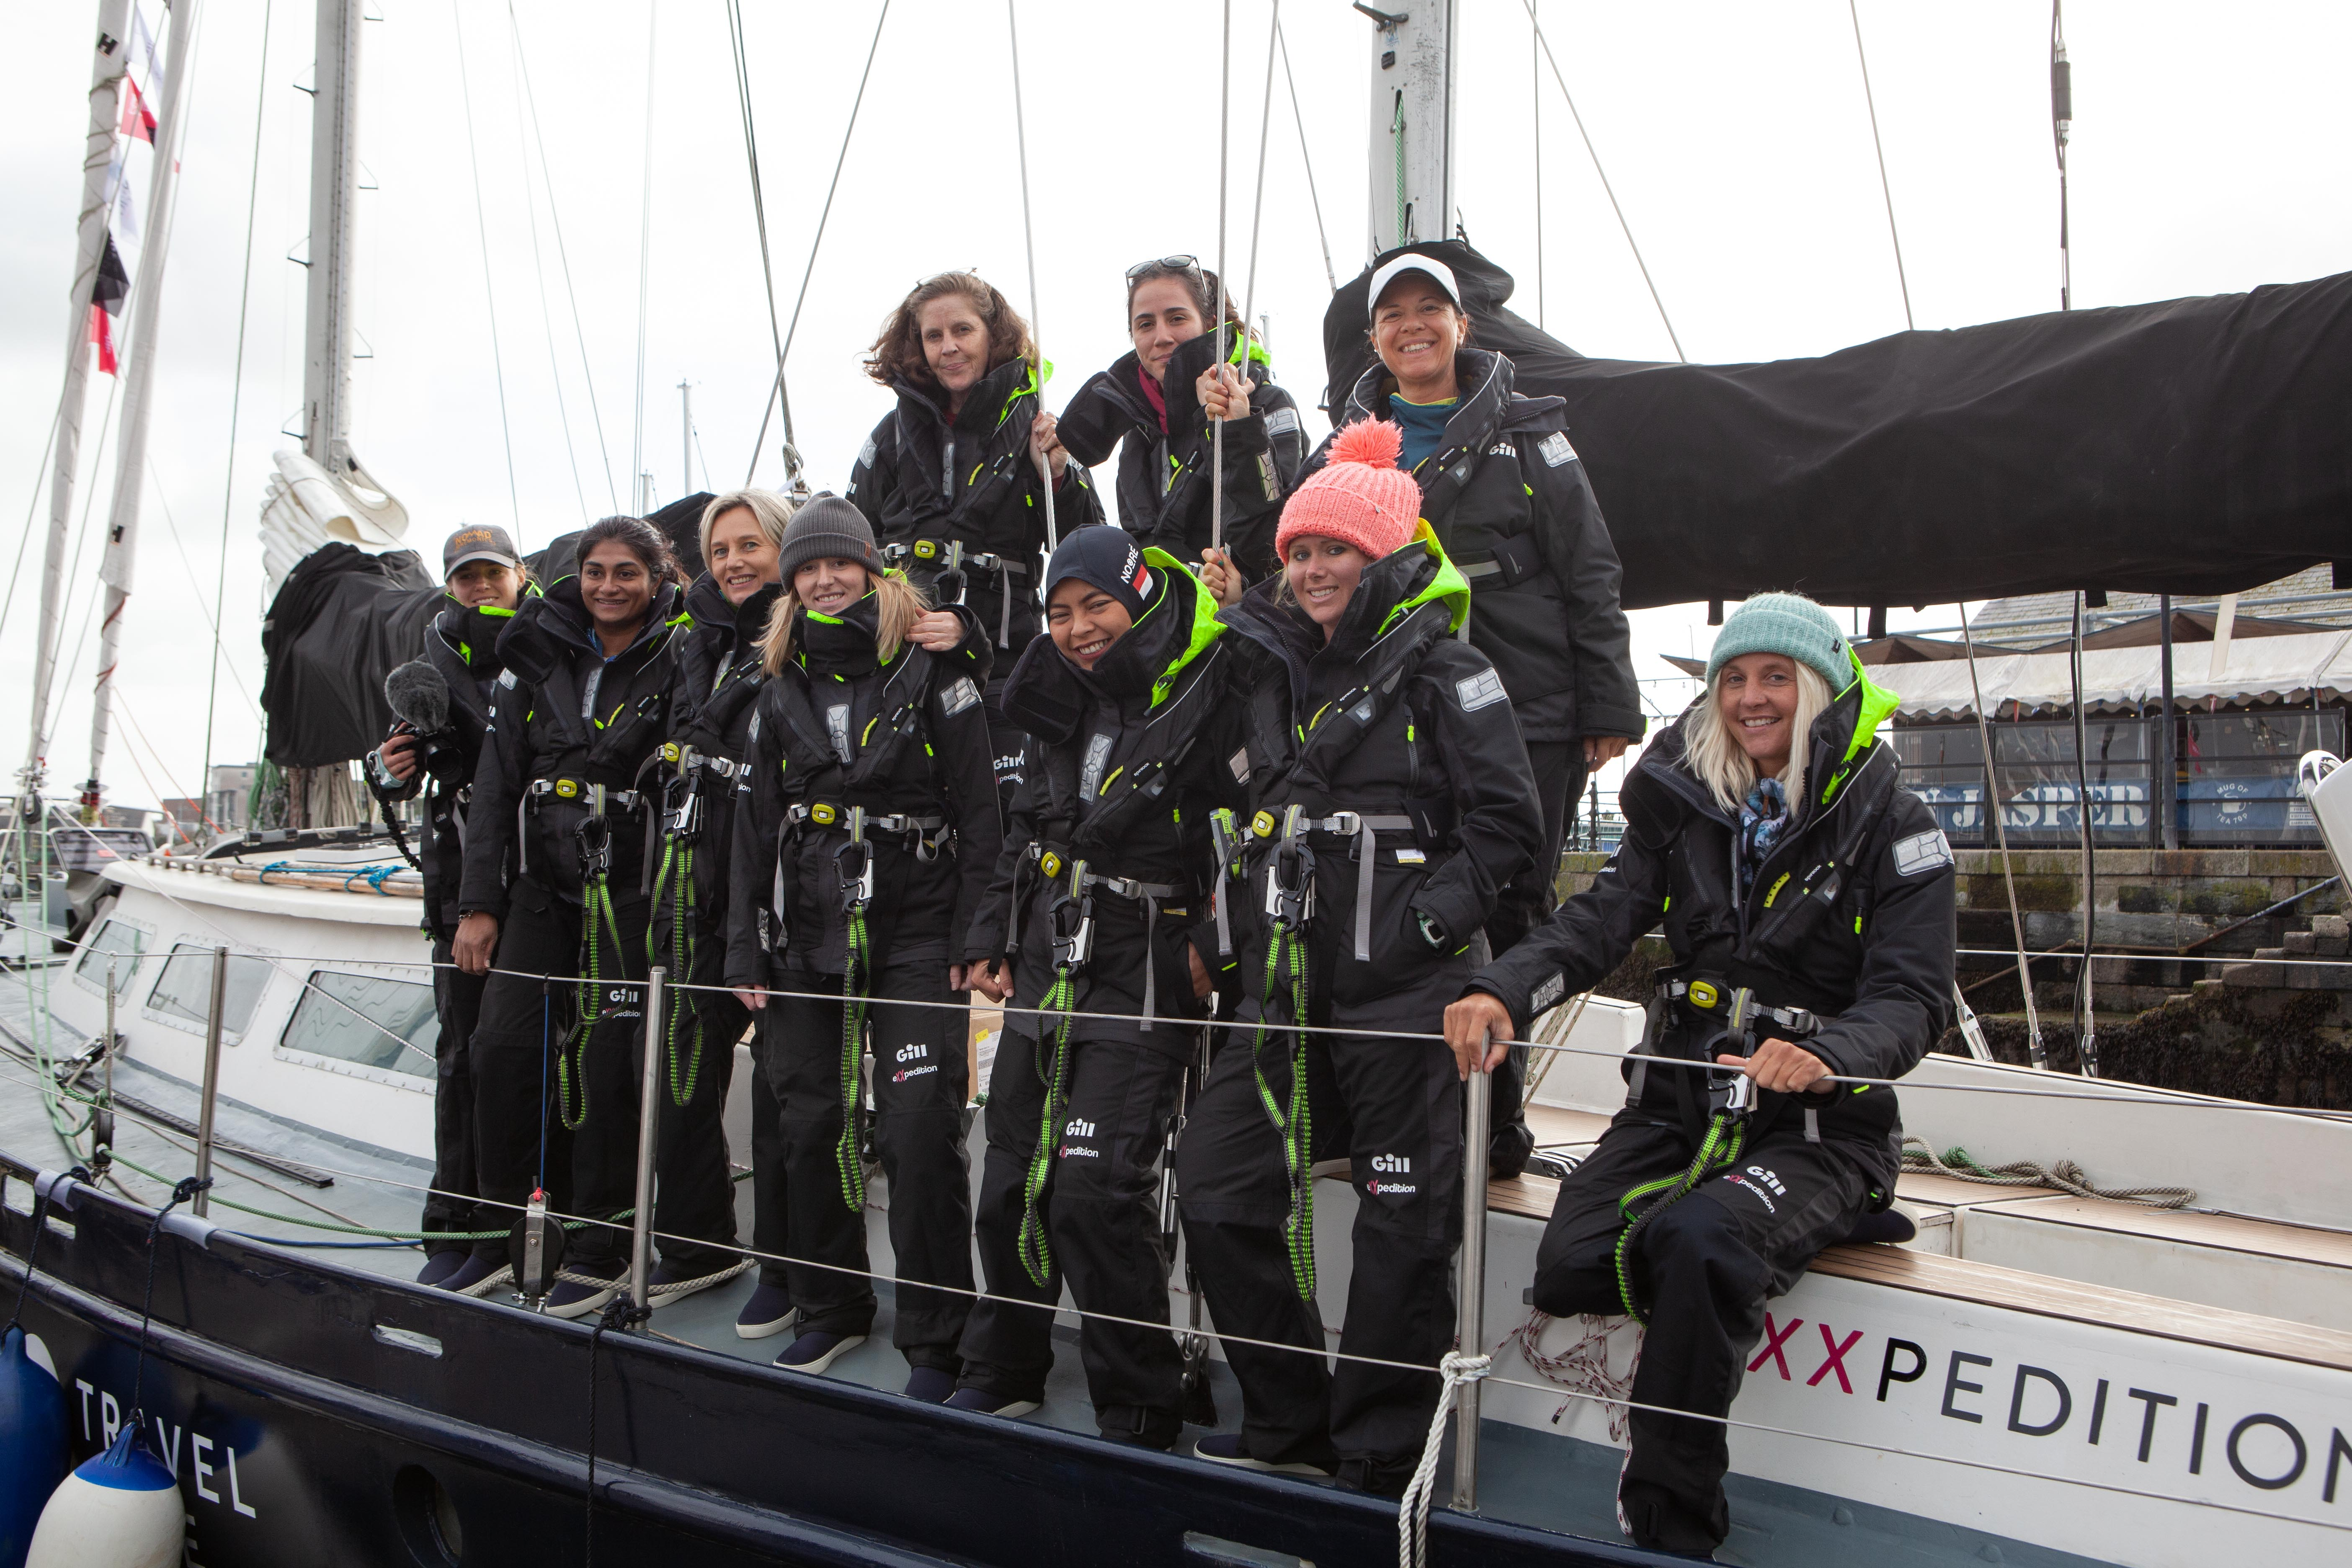 300 women sailing into the fight against plastic